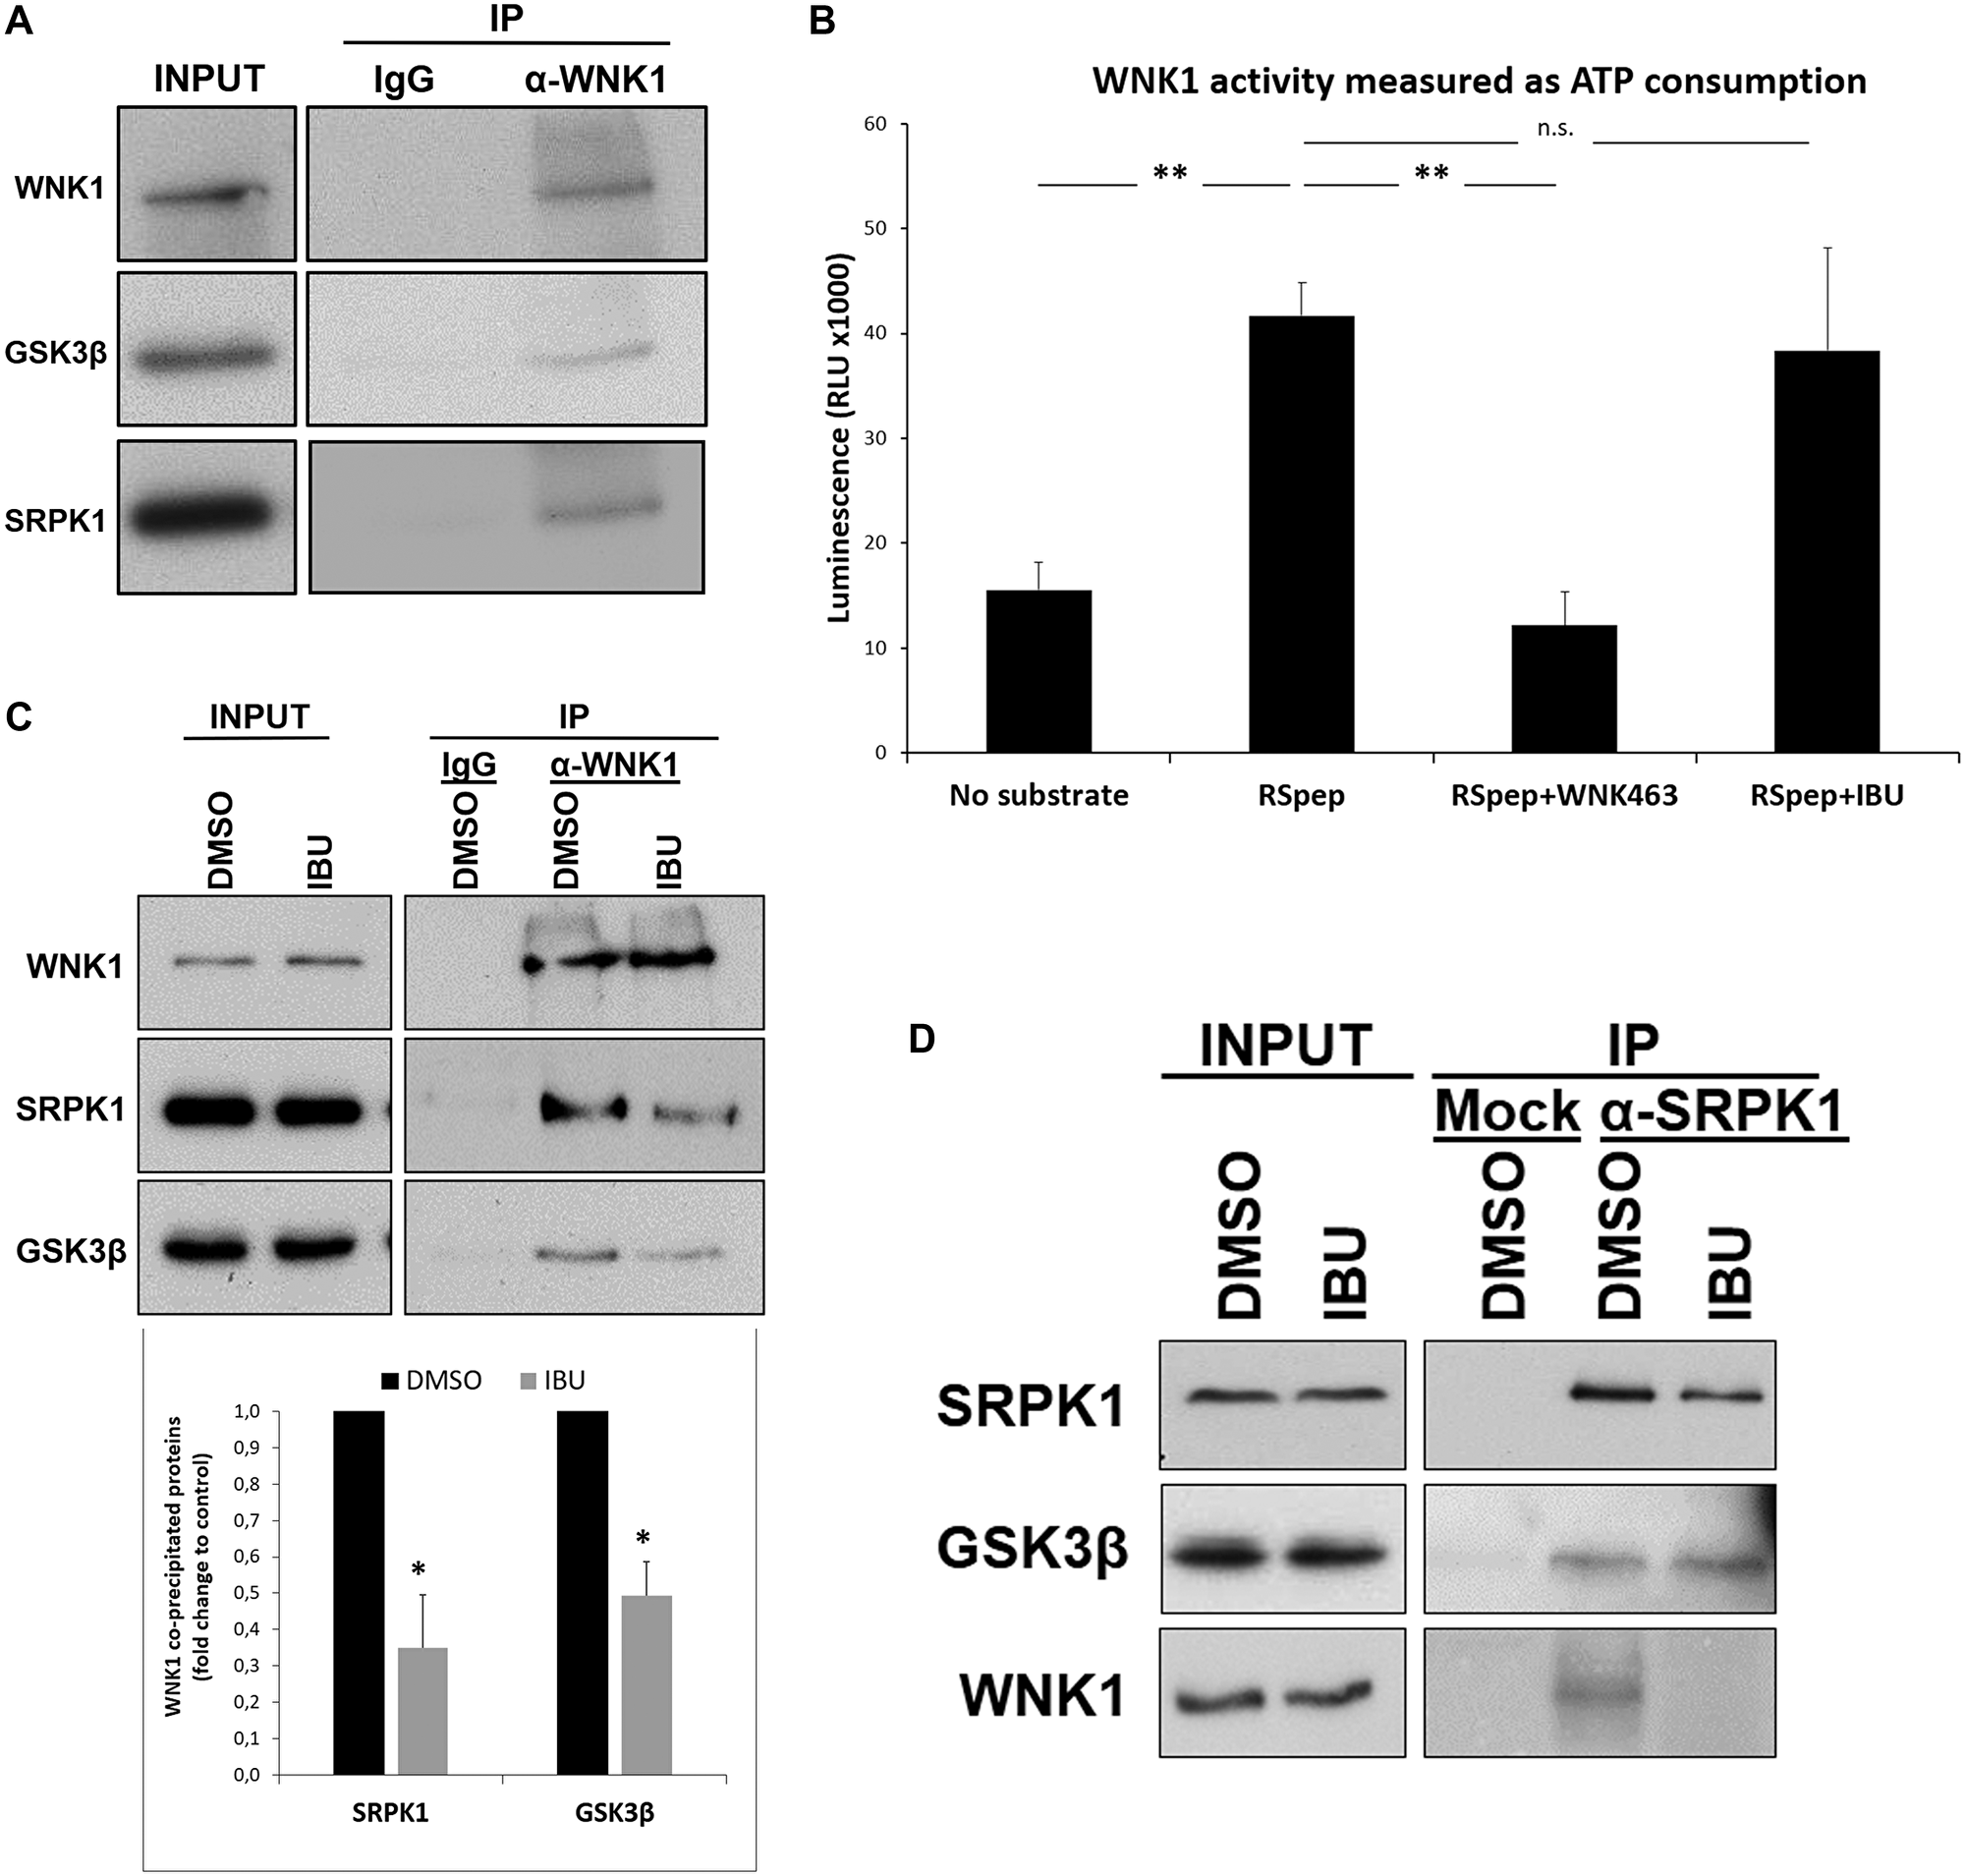 Ibuprofen impairs the interaction of WNK1 with GSK3β and SRPK1.